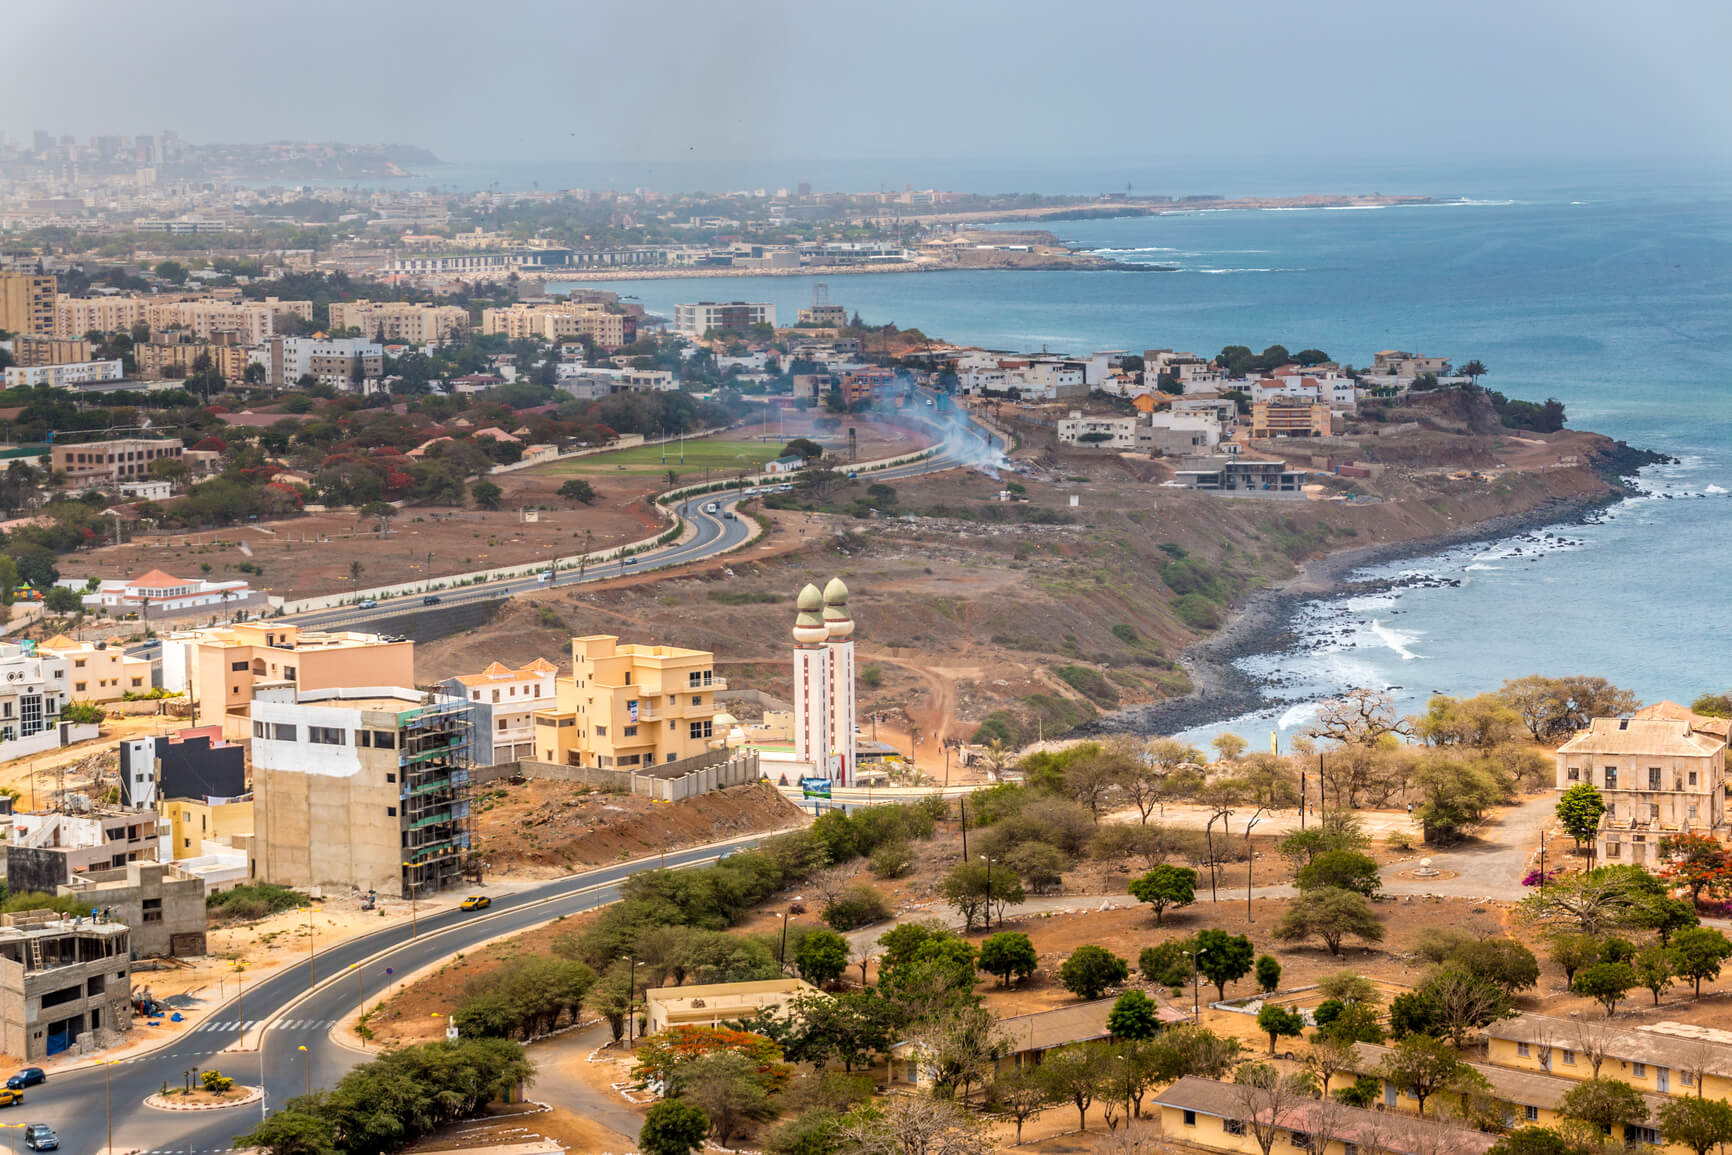 Dublin, Ireland to Dakar, Senegal for only €359 roundtrip (Oct-Dec dates)